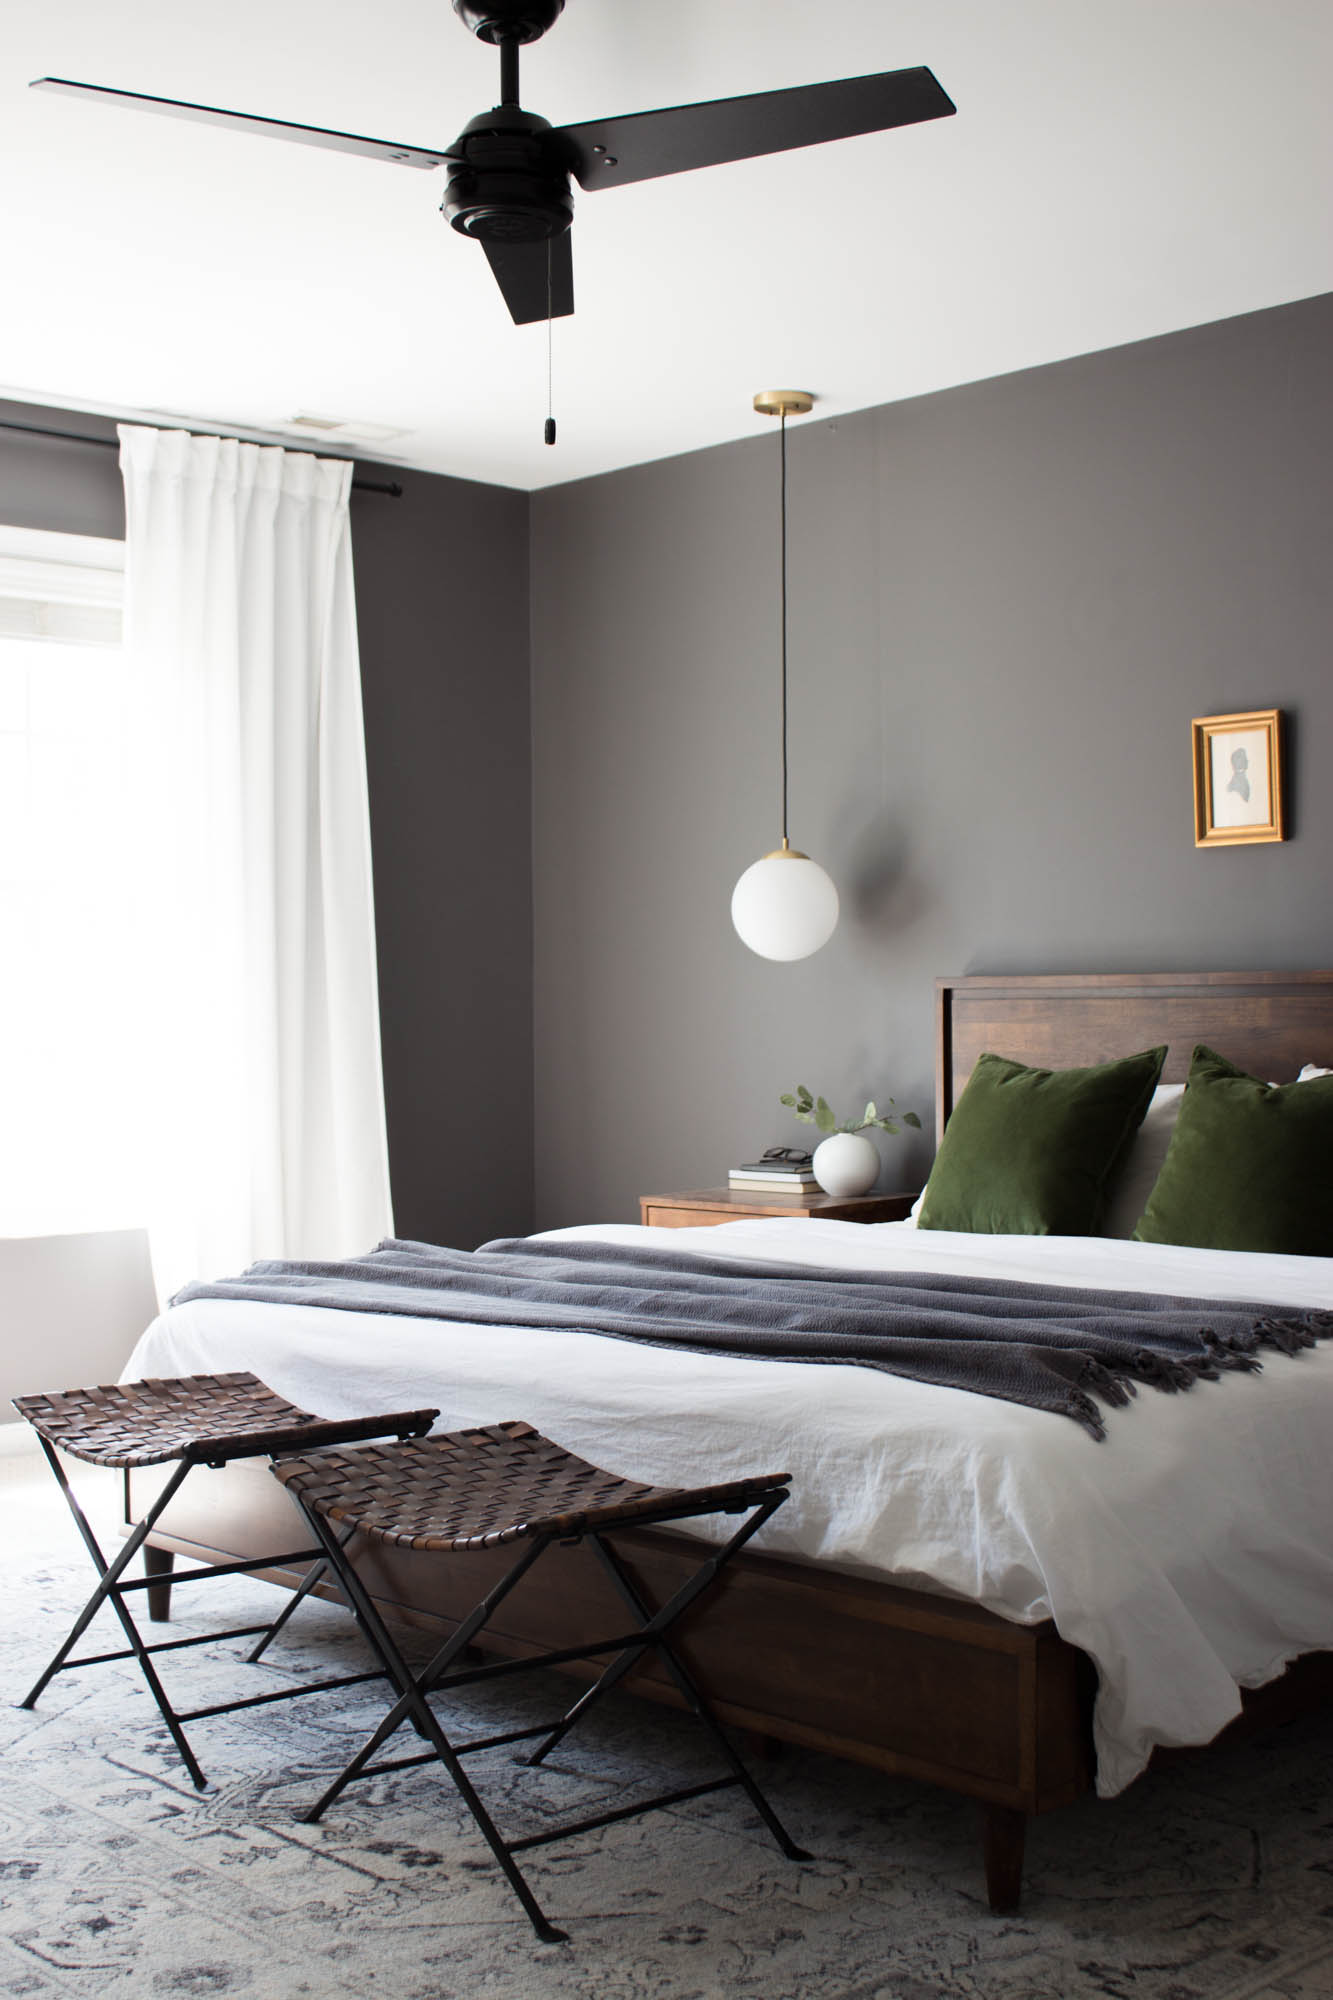 20 Dark Bedroom Ideas How To Use Dark Paint Decor In Bedrooms Apartment Therapy